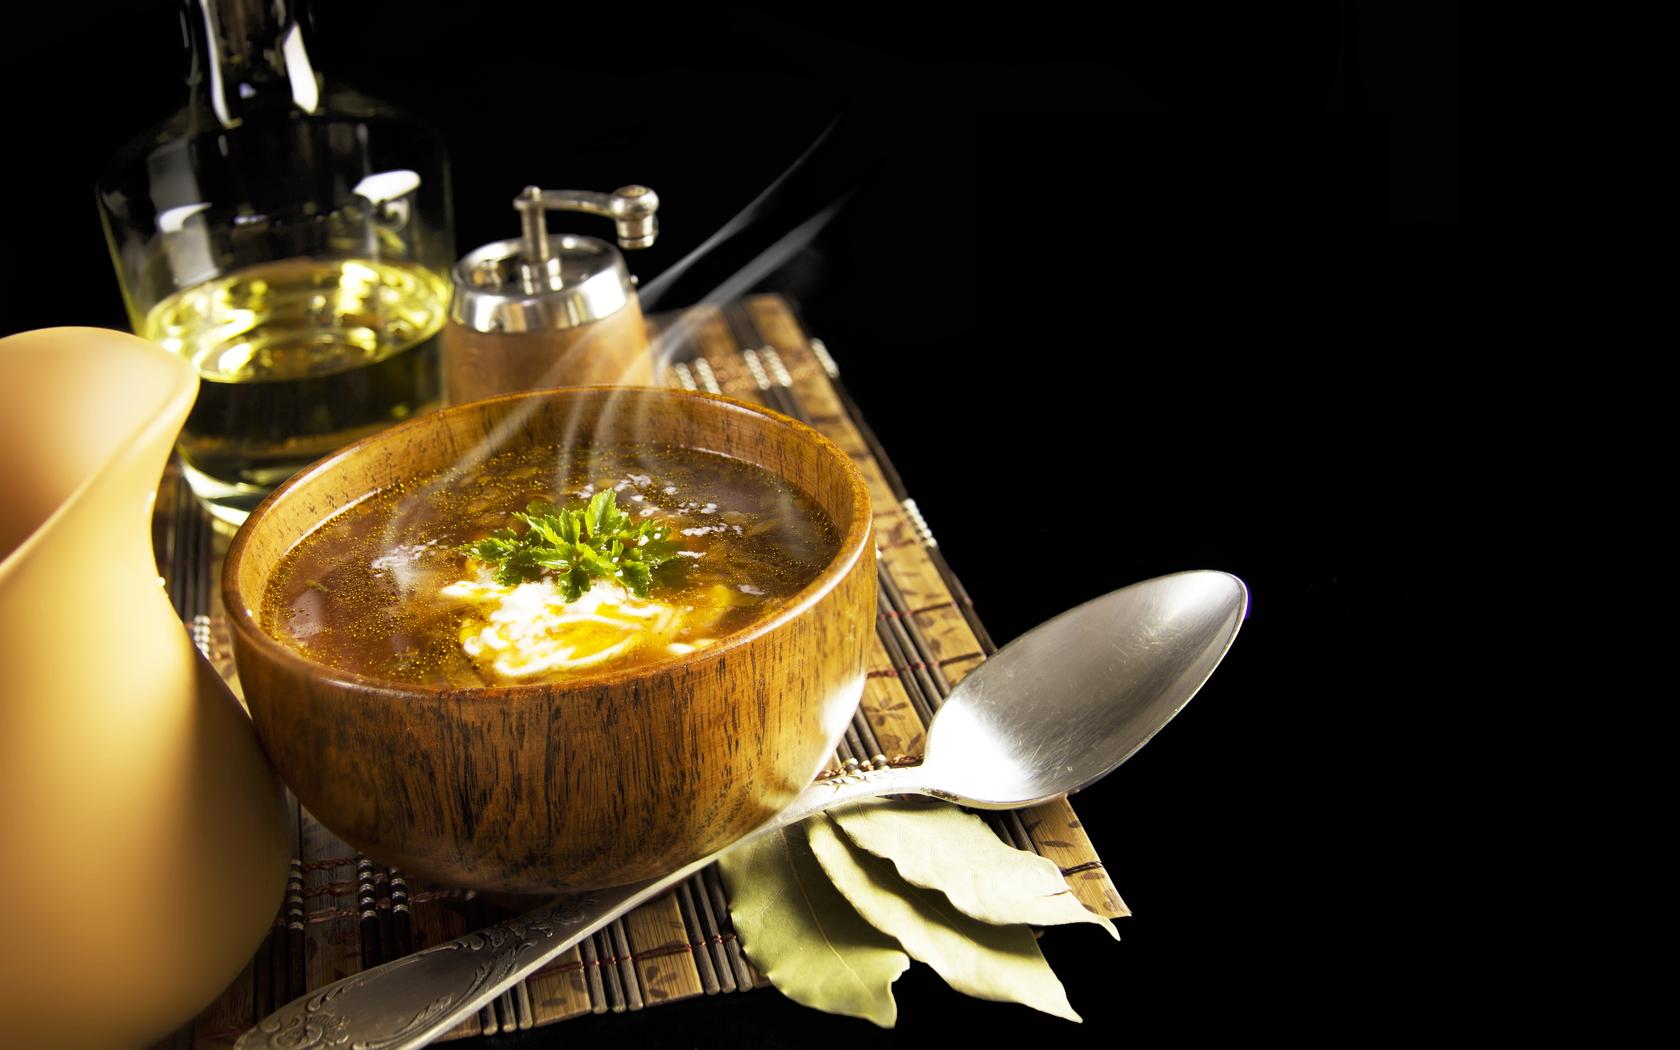 Food For Lunch Soup Wallpaper HD Wallpaper WallpaperLepi 1680x1050